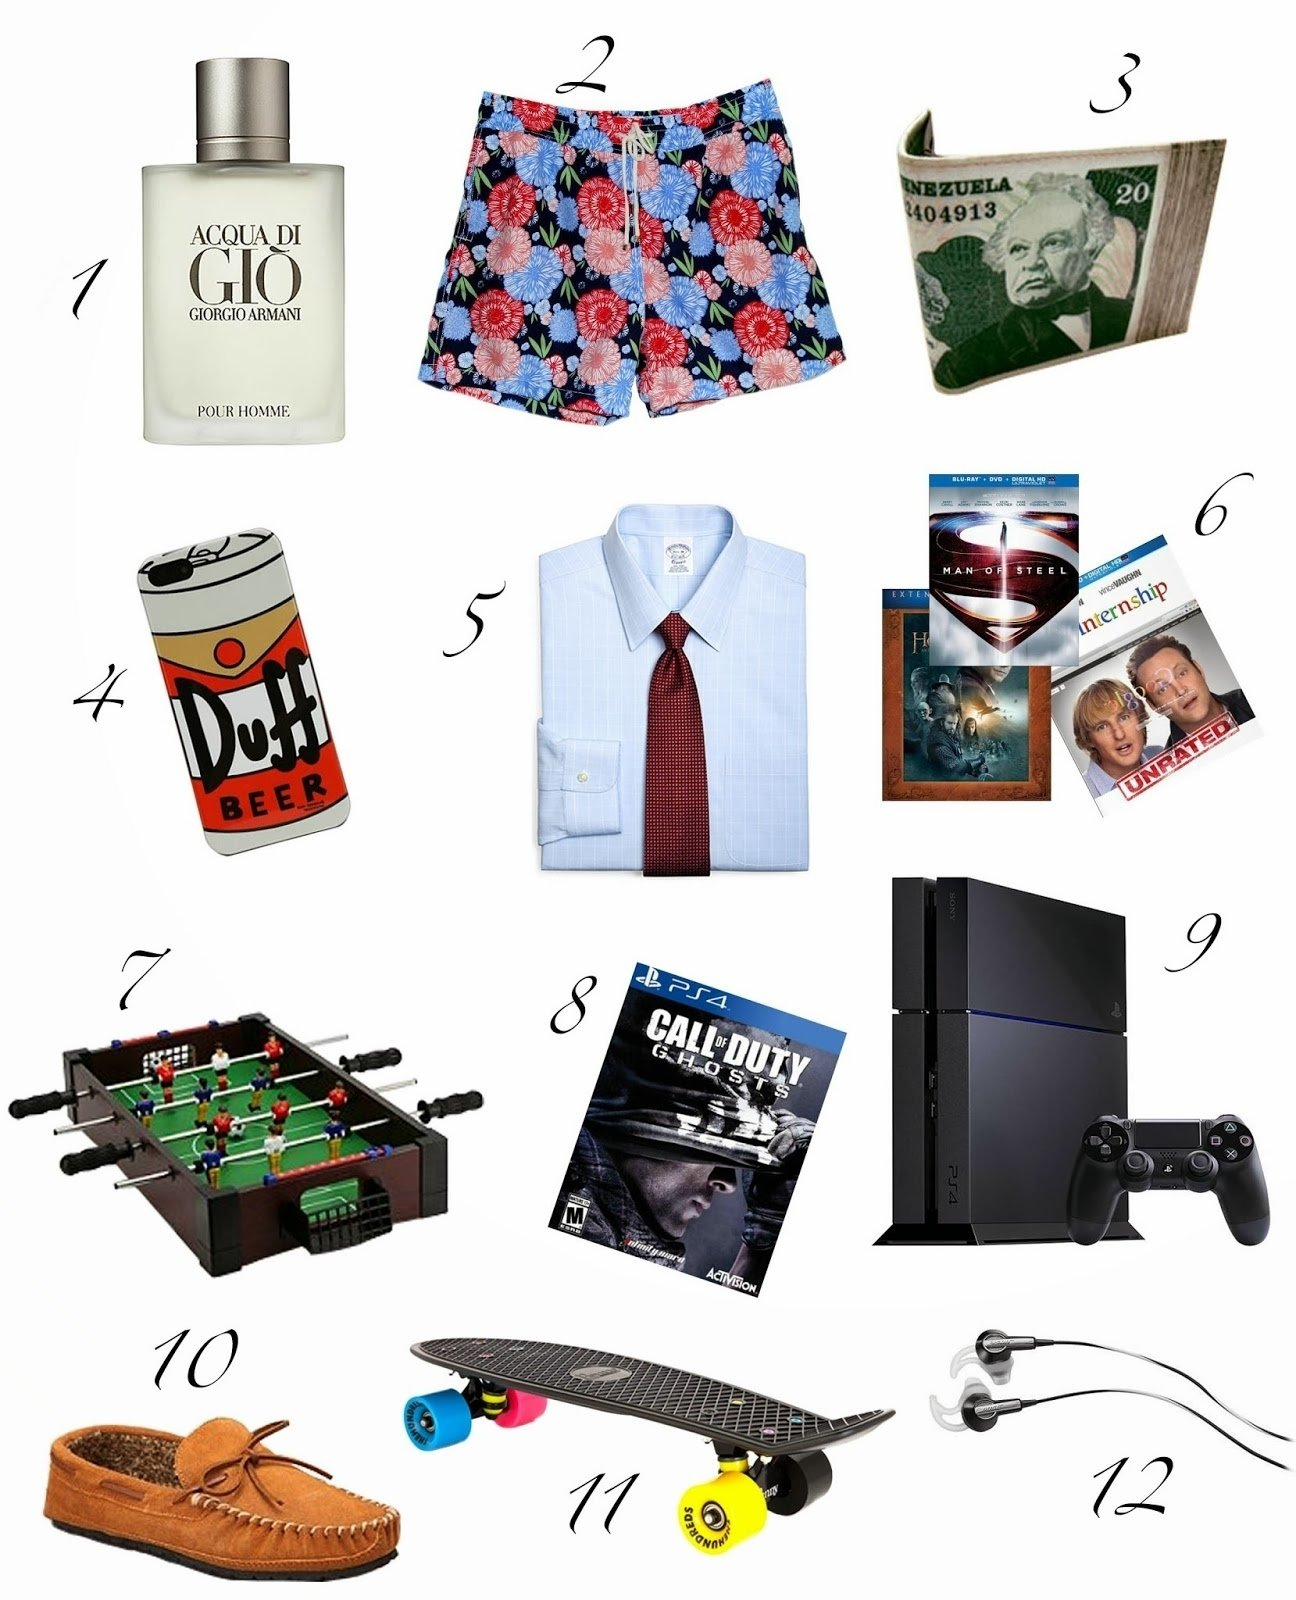 gifts design ideas: incredible sample gifts for men in their 20s